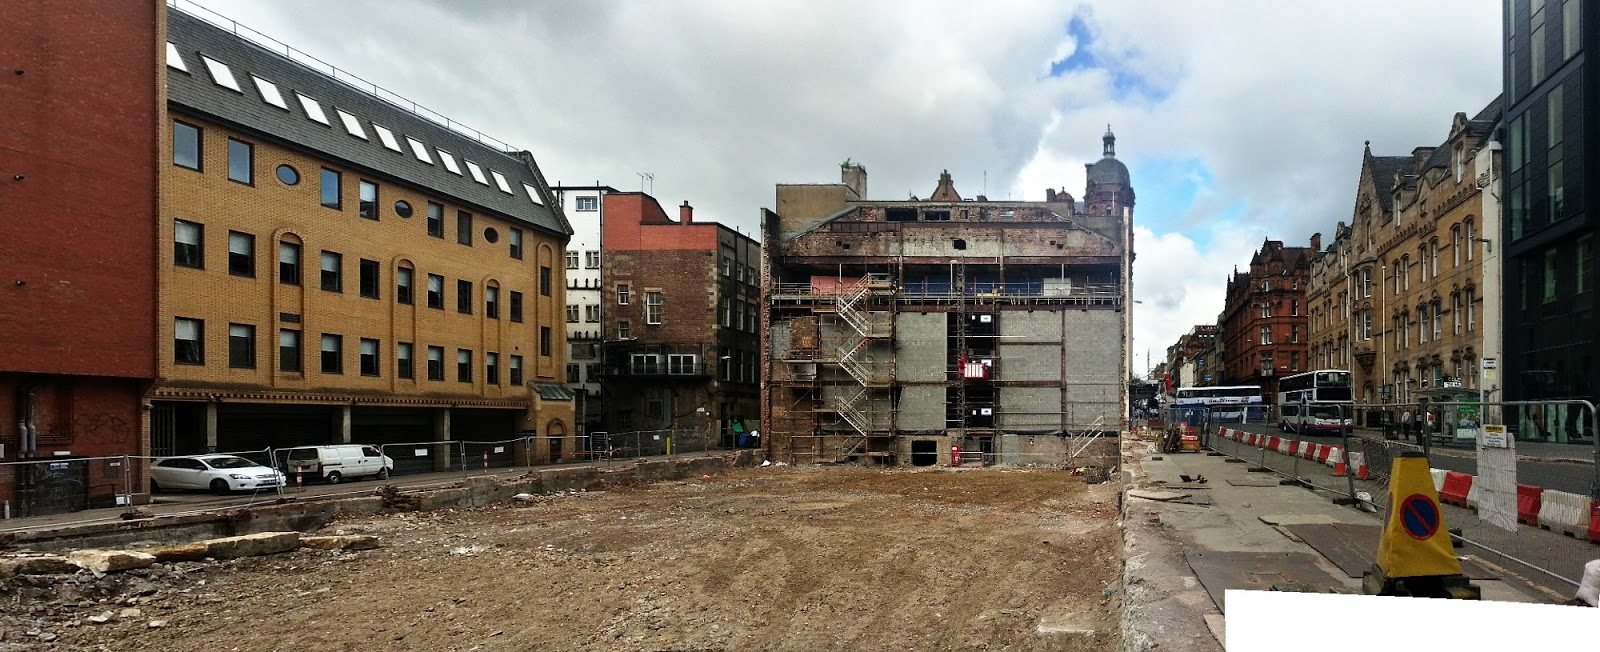 Odeon demolition complete, Glasgow